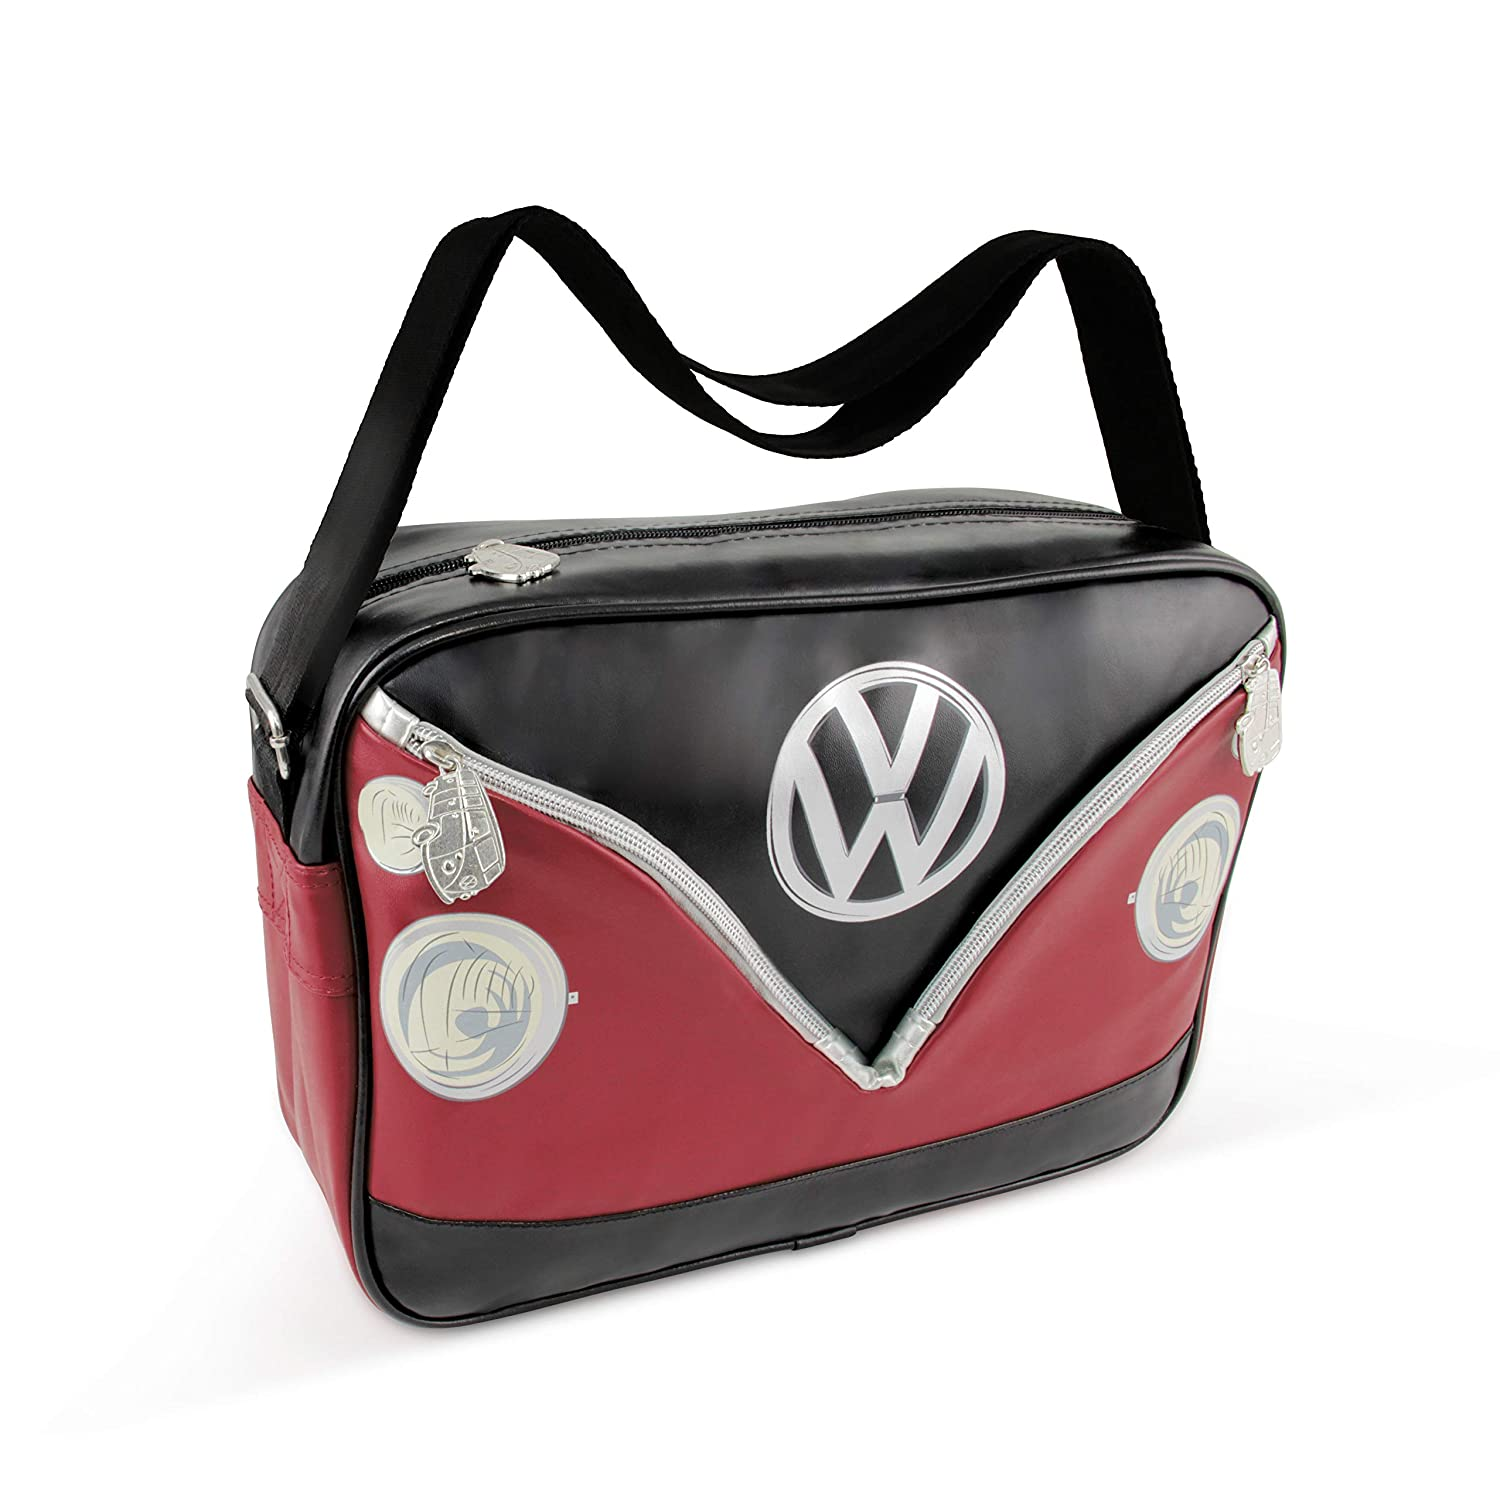 4c9efc19585ee VW Collection by Brisa Shoulder Bag Red Black: Amazon.co.uk: Kitchen & Home